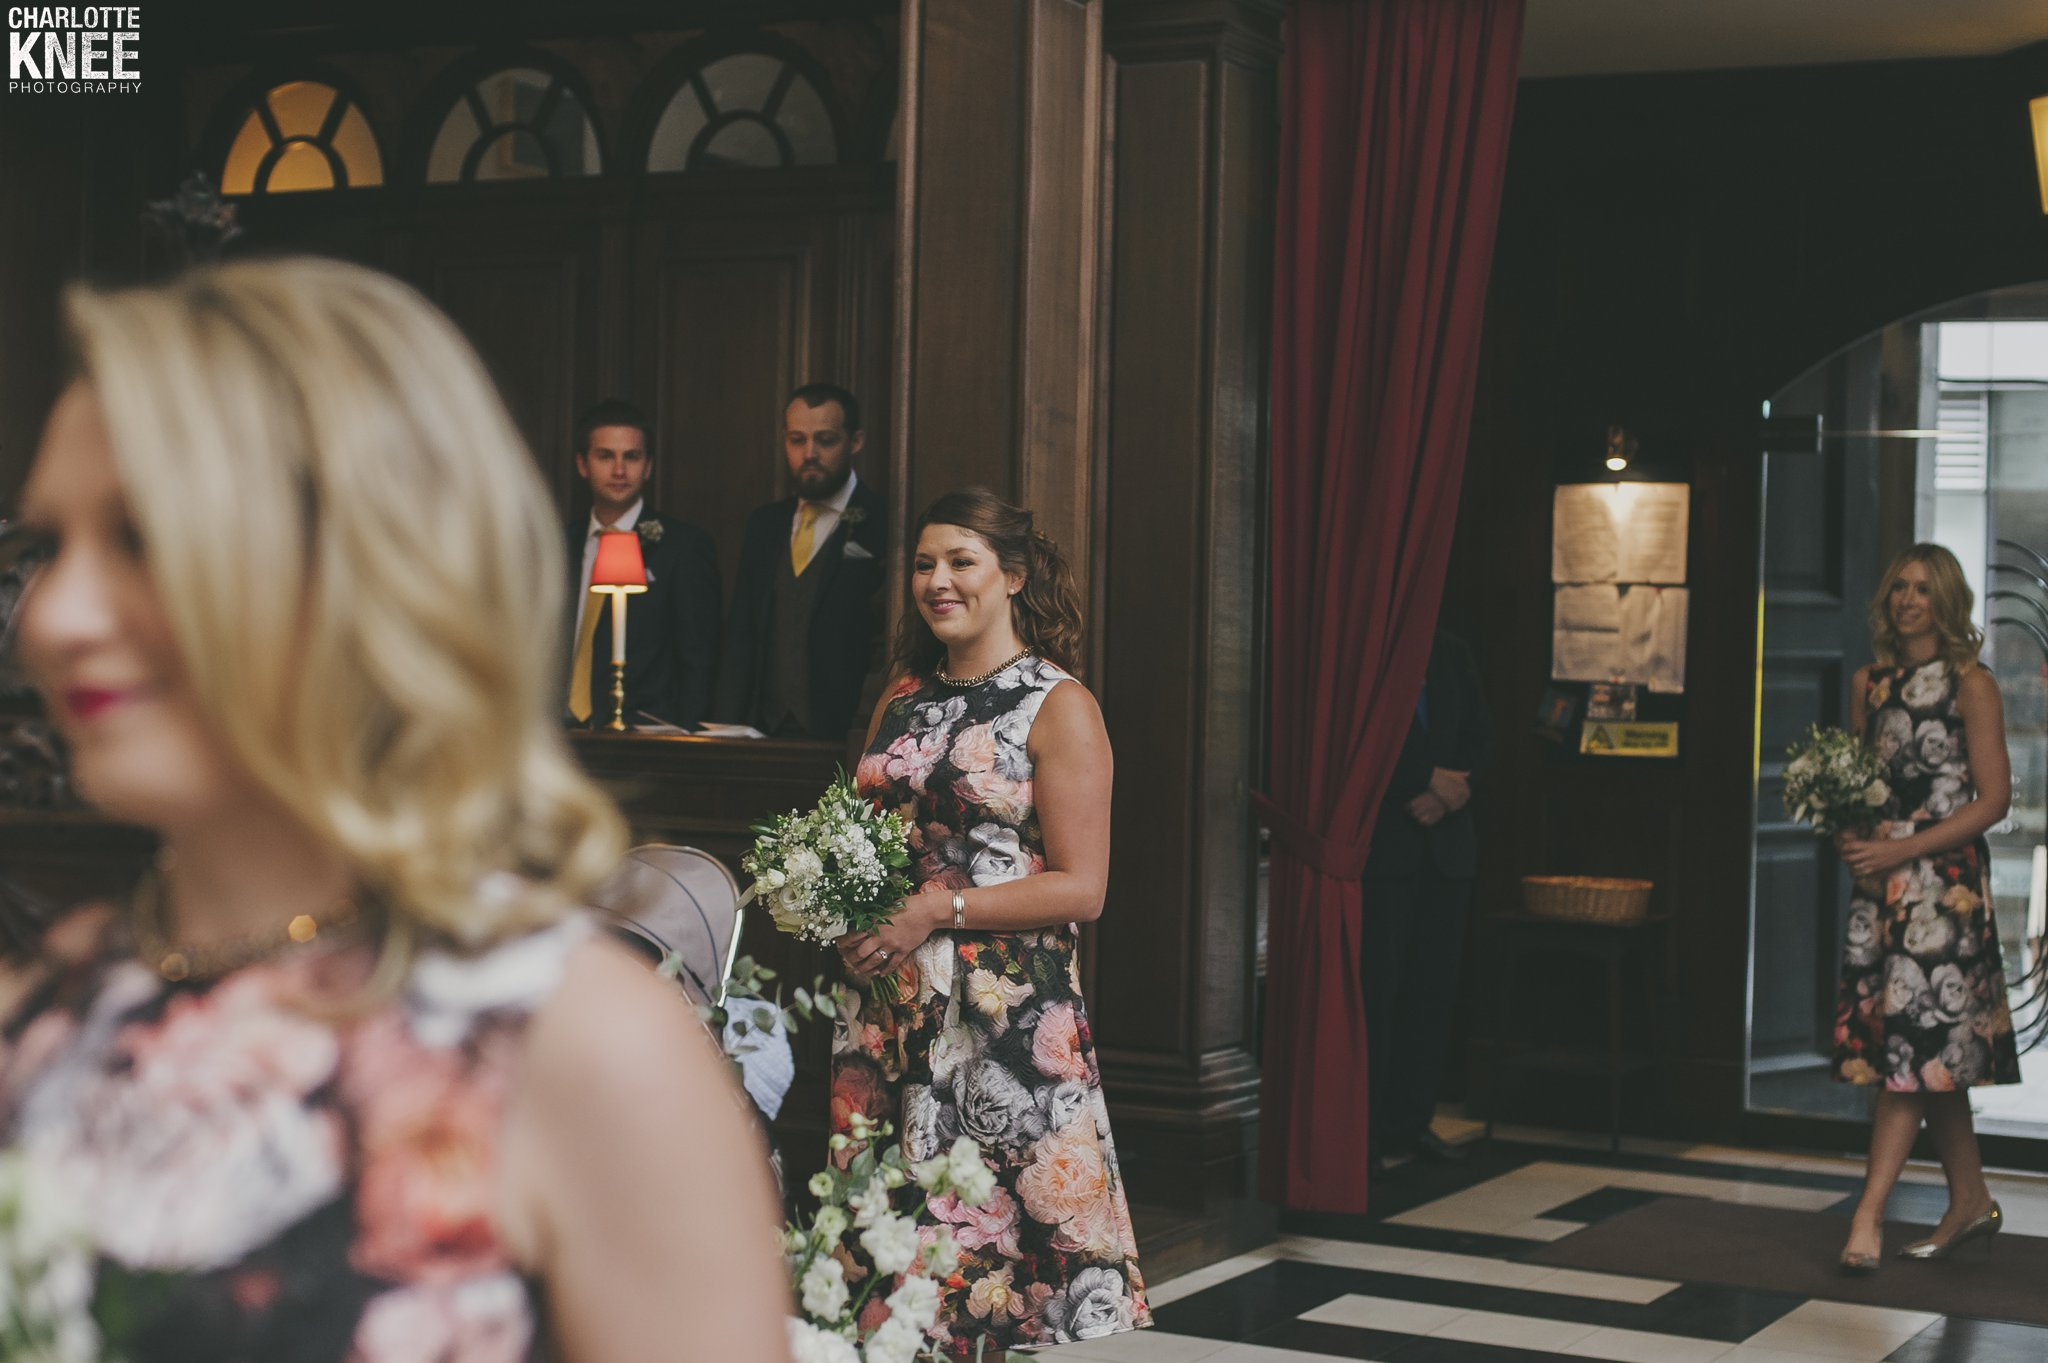 Saddlers Hall London Wedding Photography Copyright Charlotte Knee Photography_0072.jpg